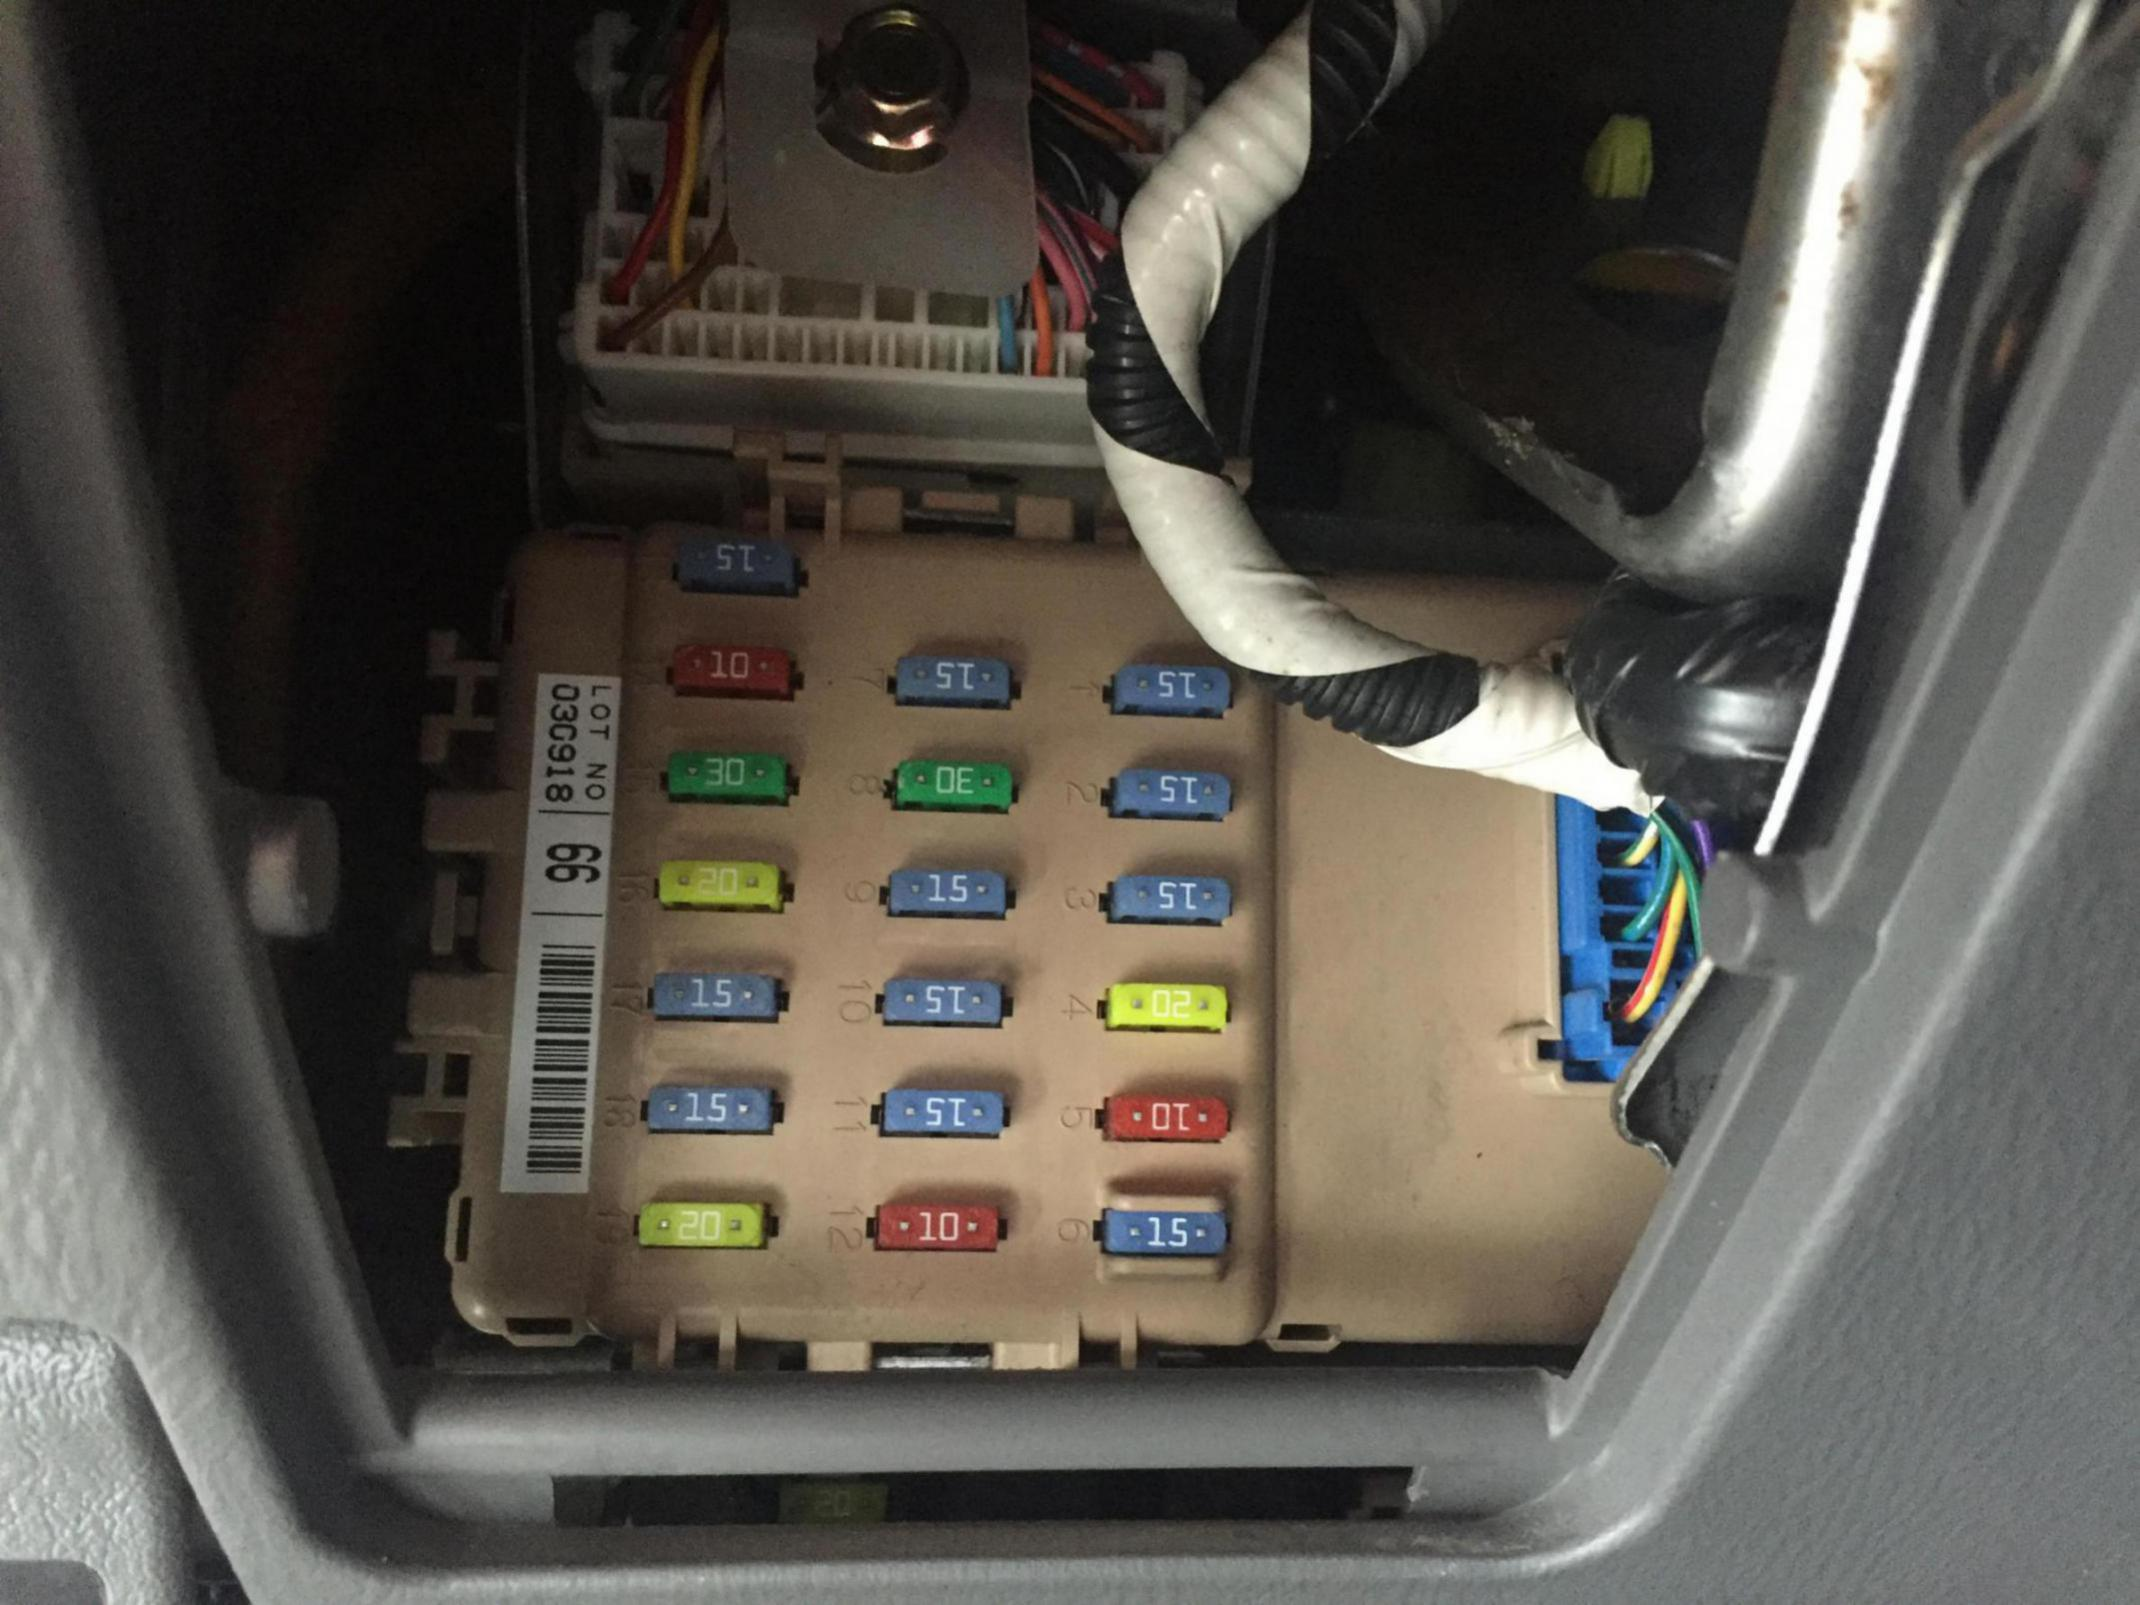 2004 legacy h6 3 0 how to remove coin tray top fuse panel layer 2010 Subaru Forester Fuse Box Diagram fuse box in subaru forester